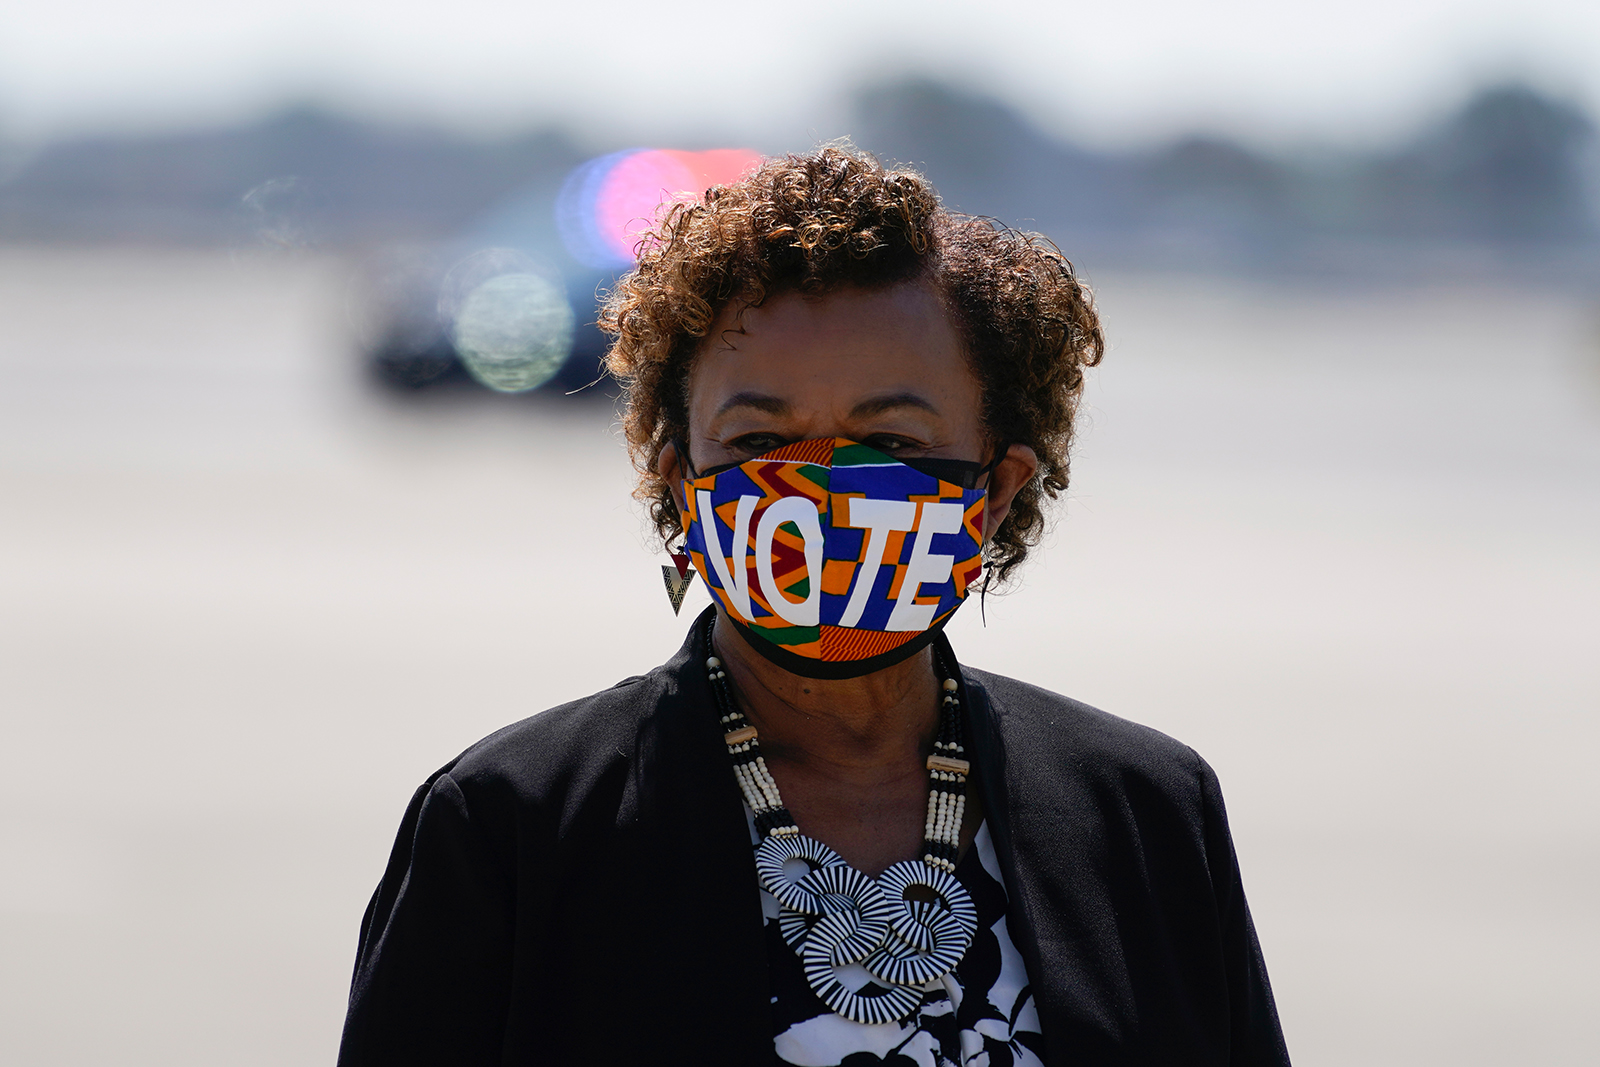 Rep. Barbara Lee, D-Calif., waiting to greet Vice President Kamala Harris at Oakland International Airport on Wednesday, Sept. 8, 2021, to campaign for California Gov. Gavin Newsom, who faces removal from office in a Sept. 14 recall election.